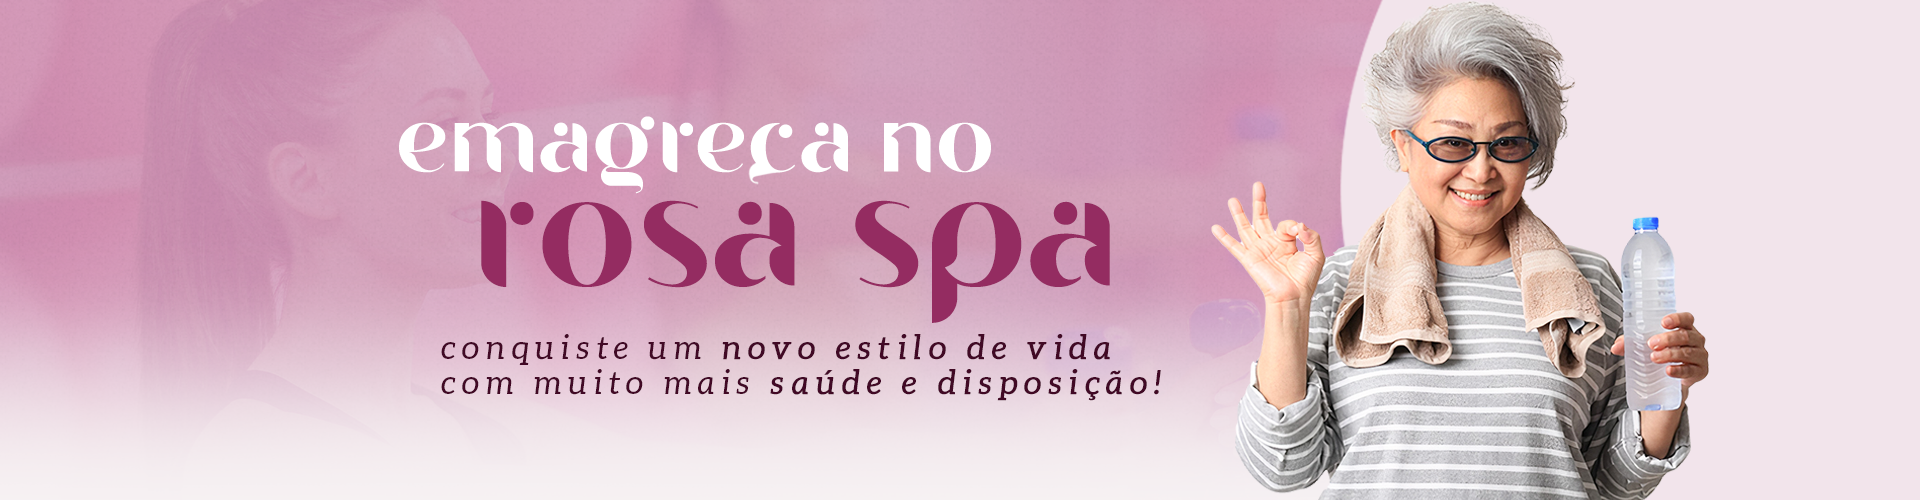 banner-rosa-spa-site-1362013.png